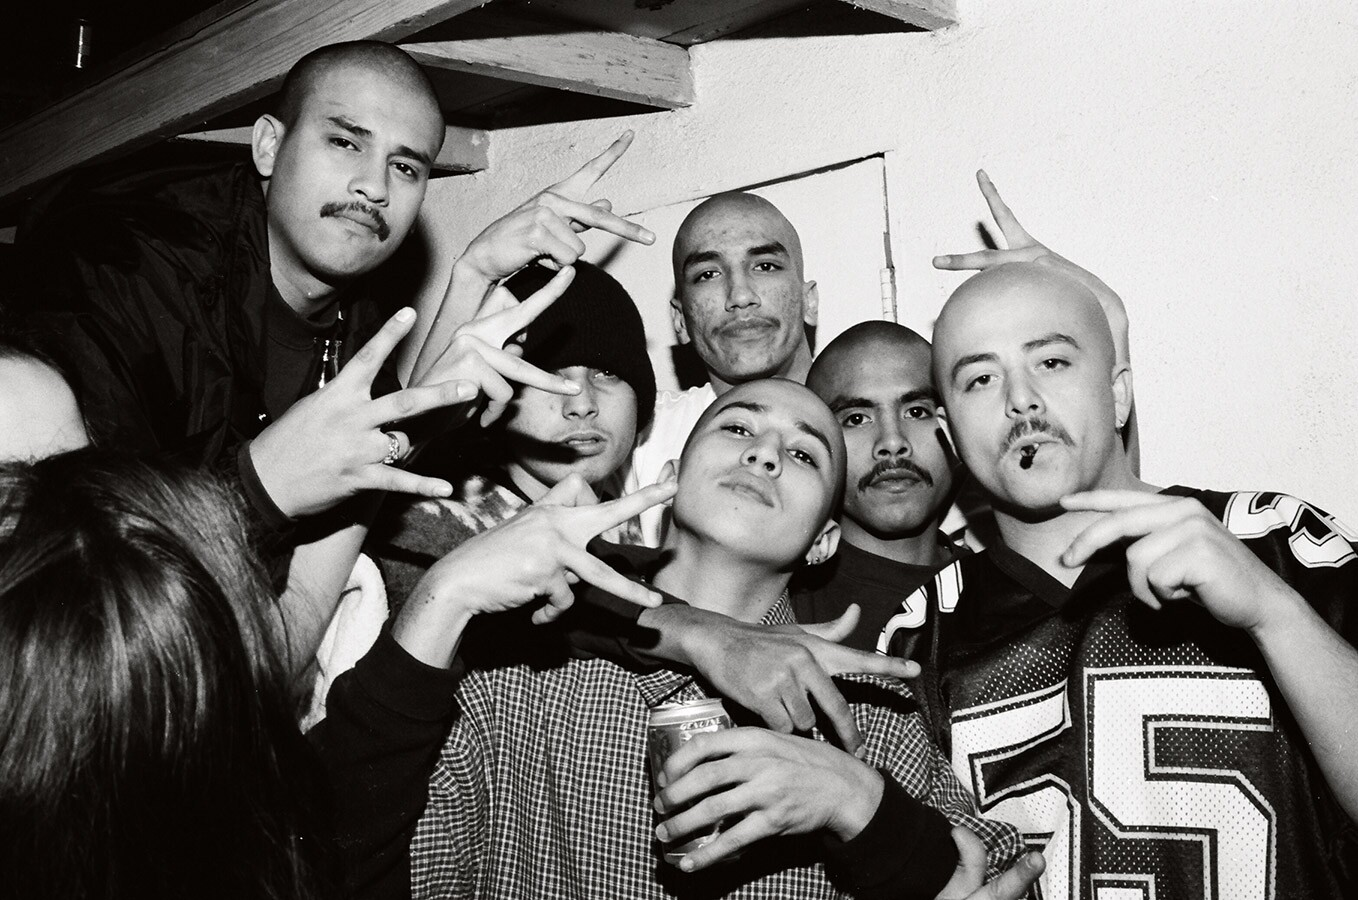 Young men at a party with gang signs